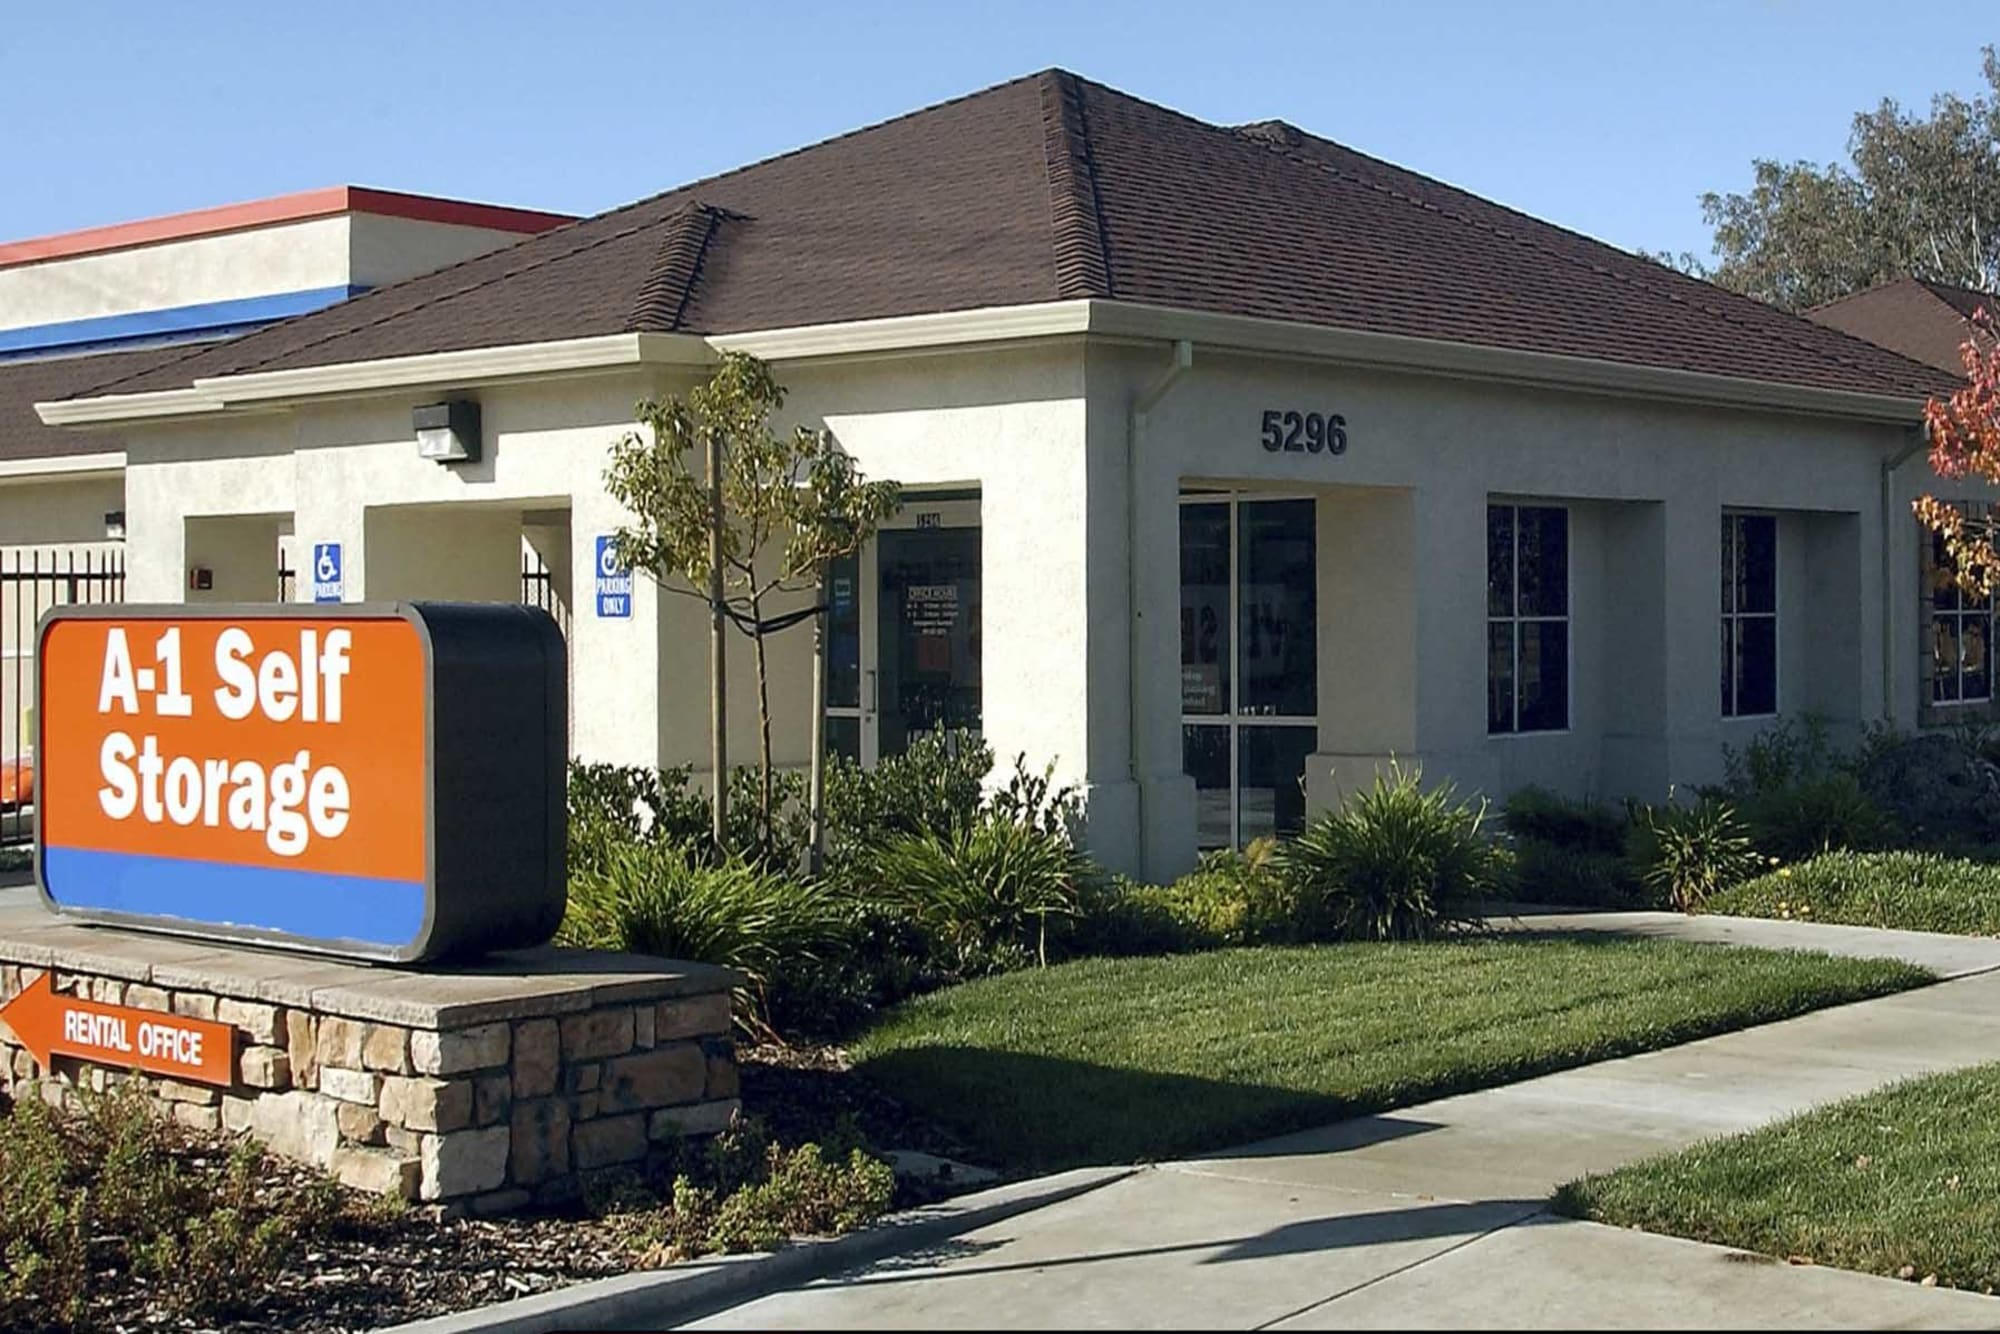 View from the street of A-1 Self Storage in Concord, California